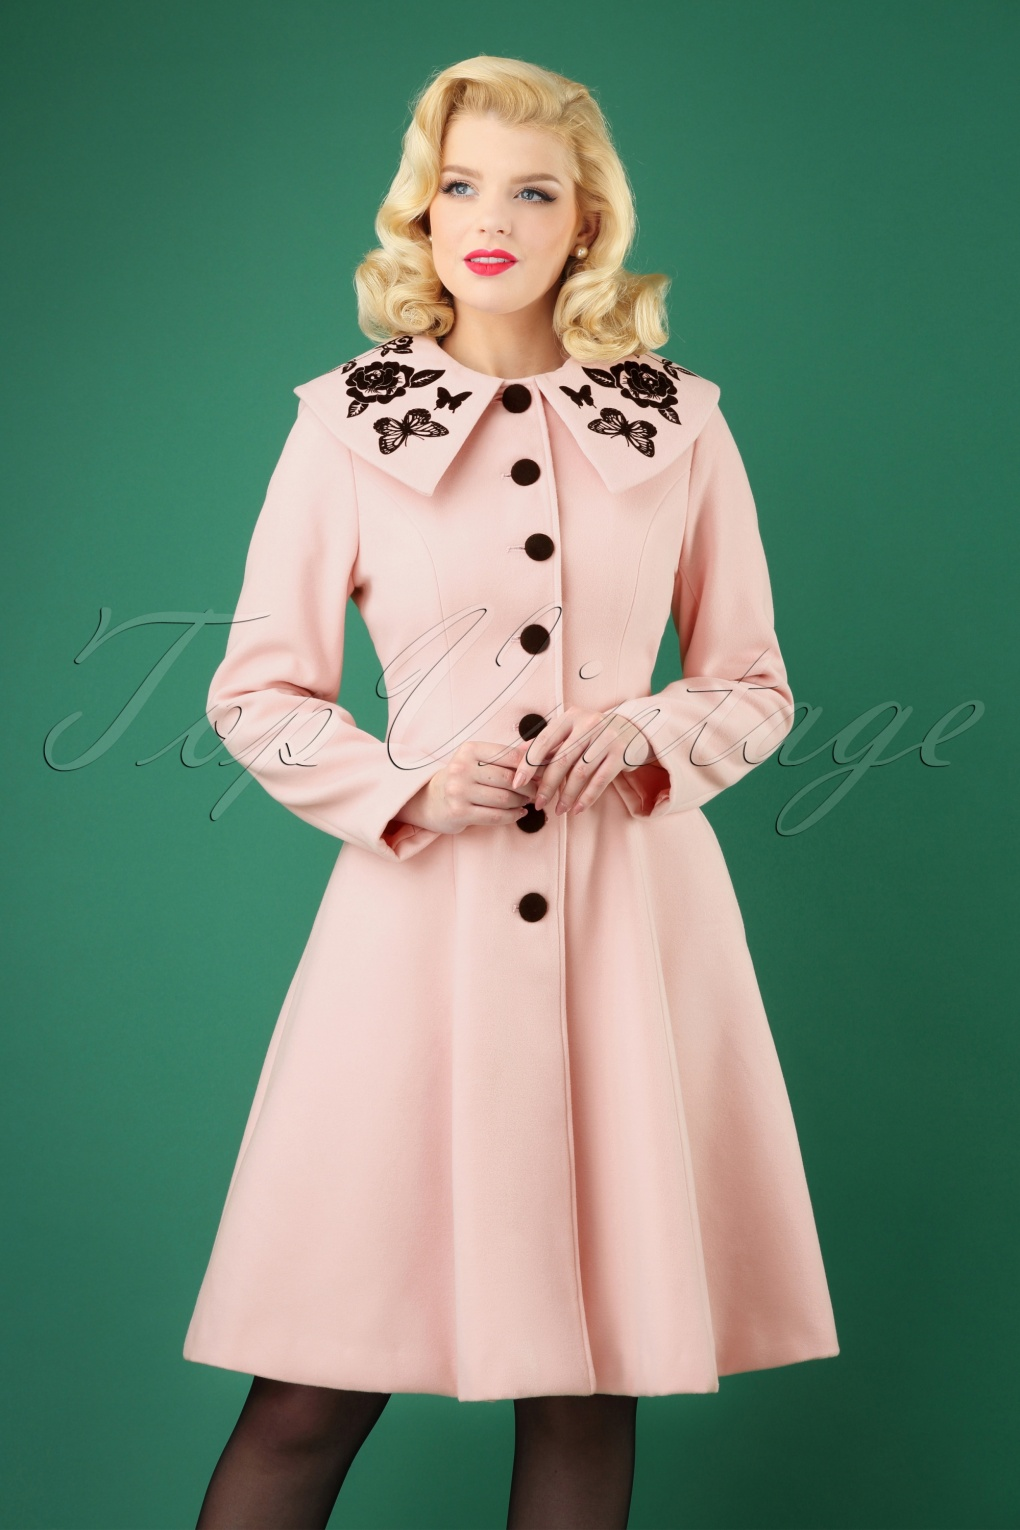 Vintage Coats & Jackets | Retro Coats and Jackets 50s Hermione Coat in Pink £121.18 AT vintagedancer.com